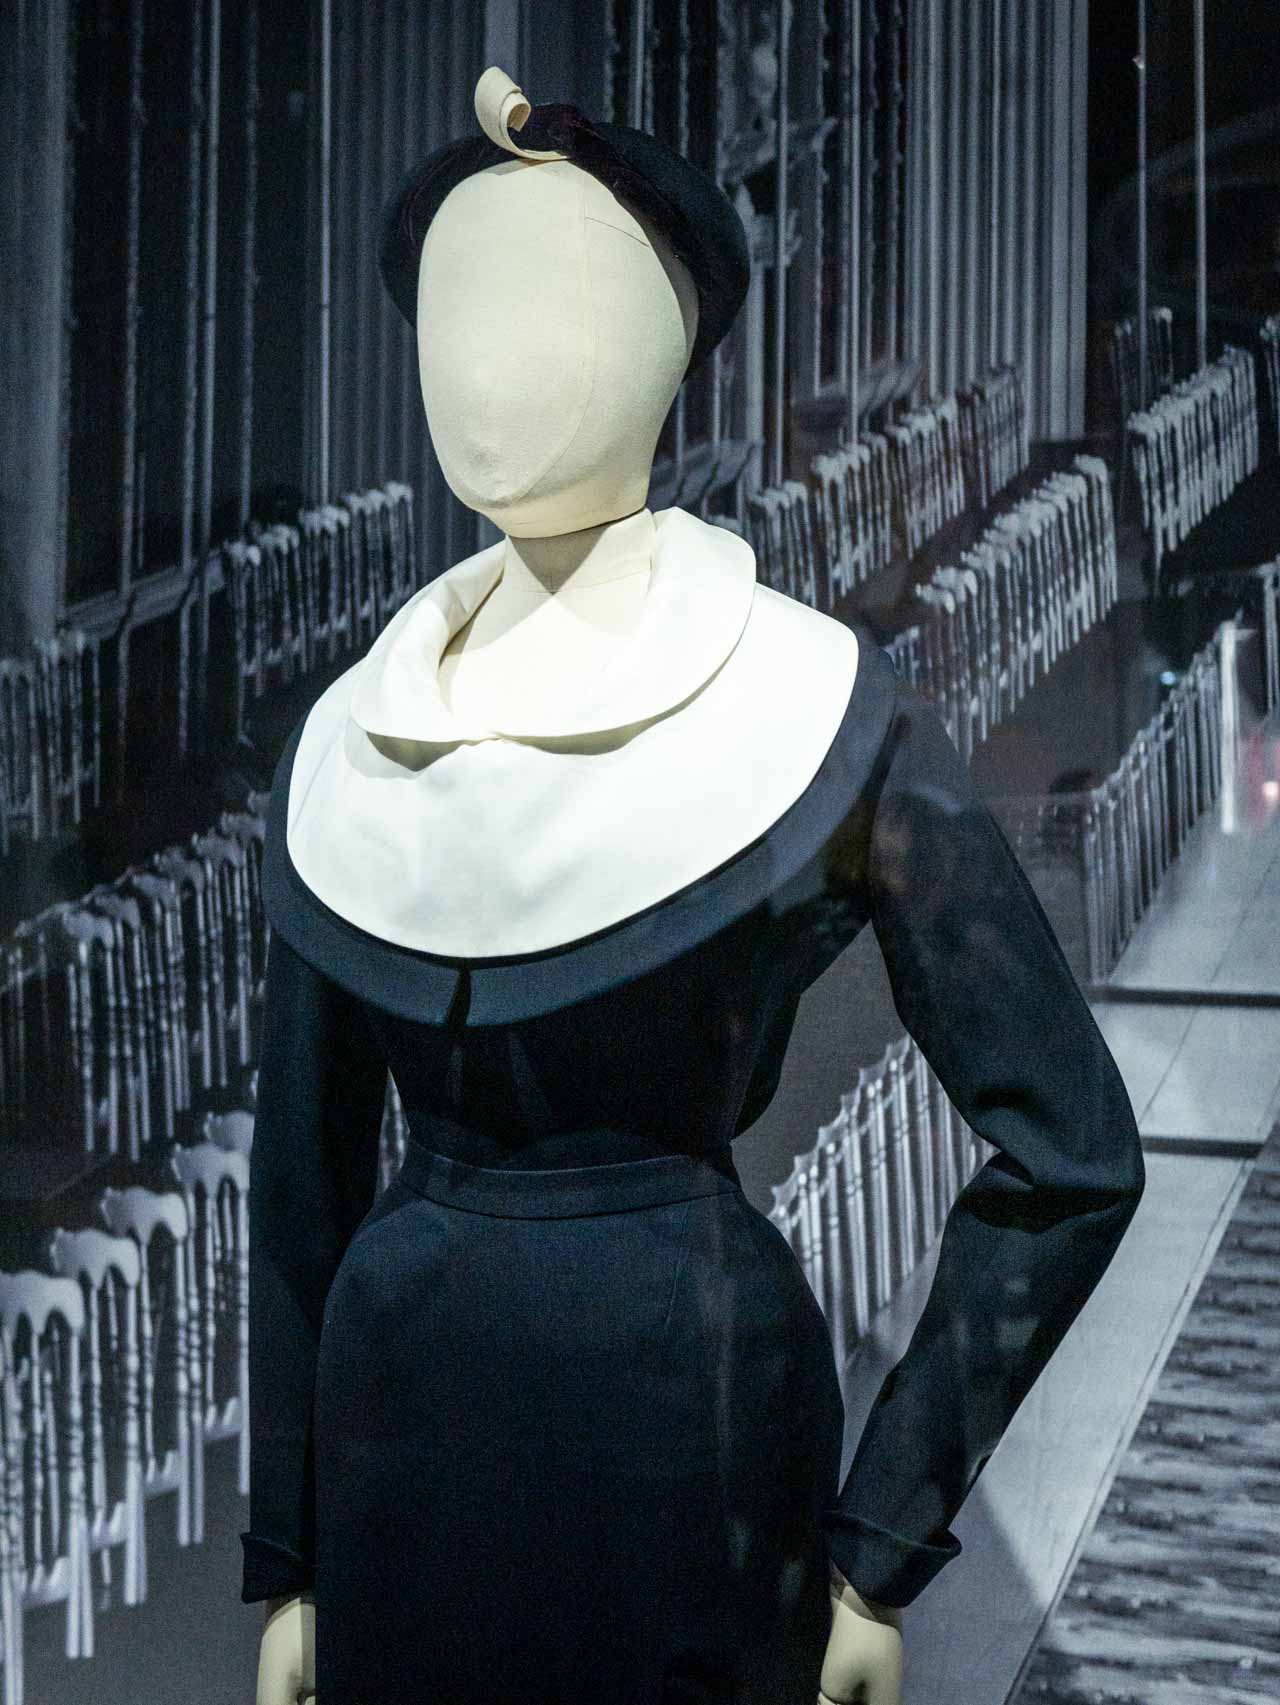 Christian Dior: Designer of Dreams. The Cutting Class. Nonette, Bodice and Skirt, Spring-Summer 1950. Image 2. © The Cutting Class, 2018.